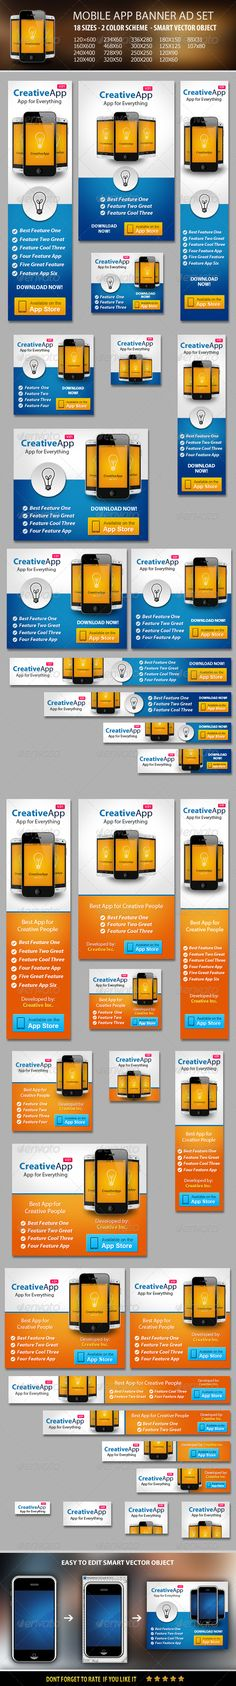 Mobile App Banner ad Set Template PSD   Buy and Download: http://graphicriver.net/item/mobile-app-banner-ad-set/5843731?WT.ac=category_thumb&WT.z_author=booharry&ref=ksioks